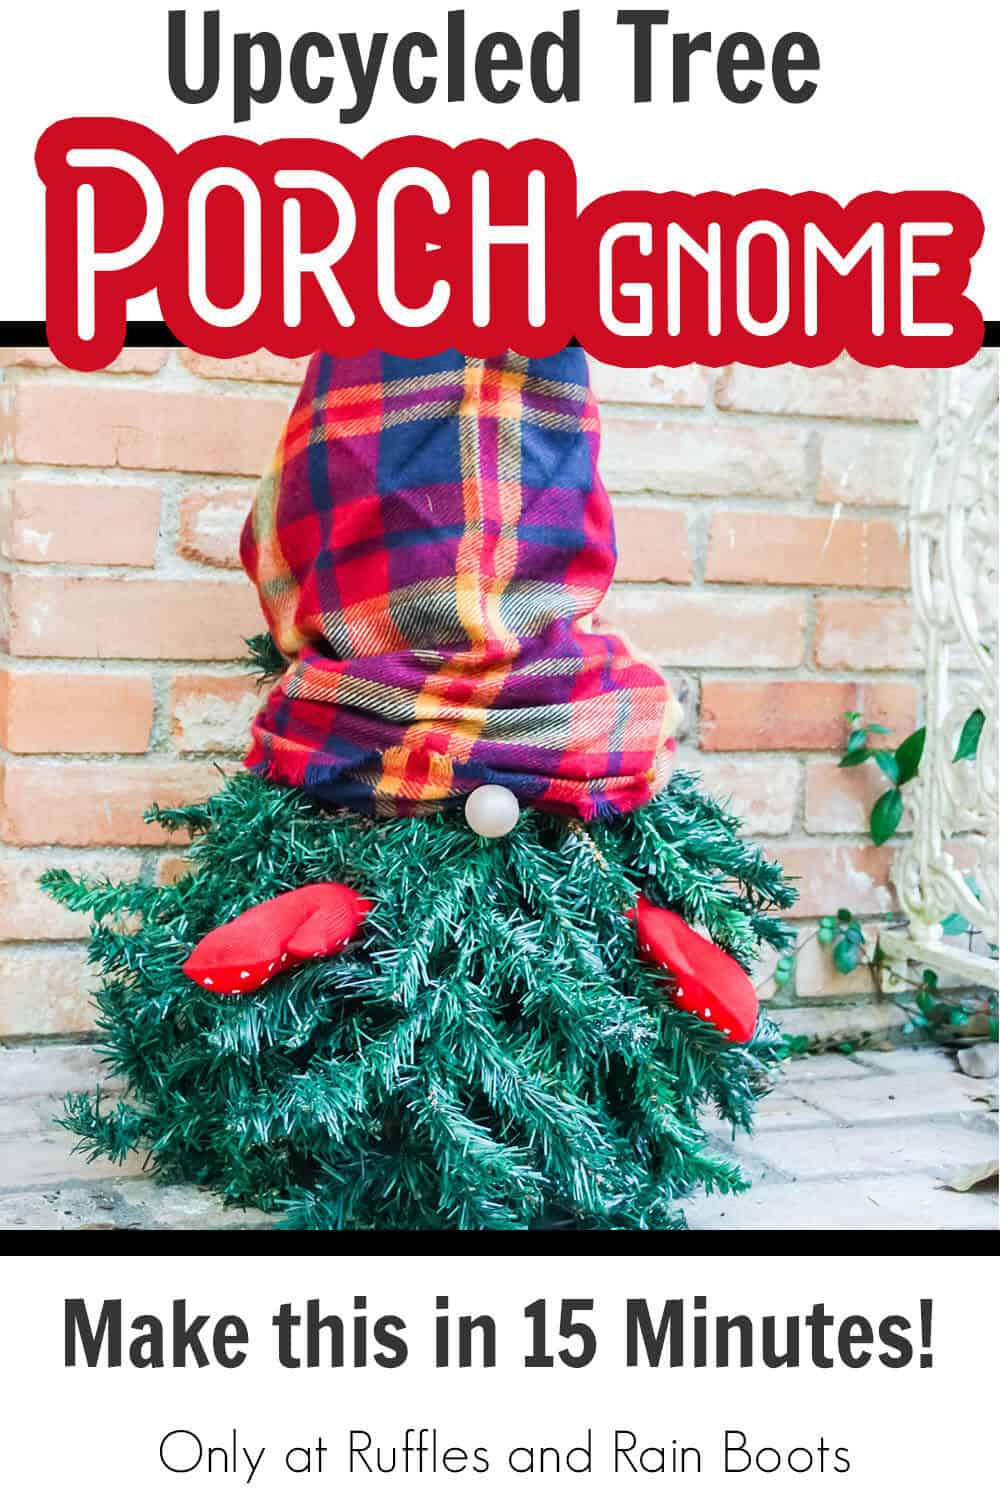 evergreen tree gnome with text which reads upcycled tree porch gnome make this in 15 minutes!